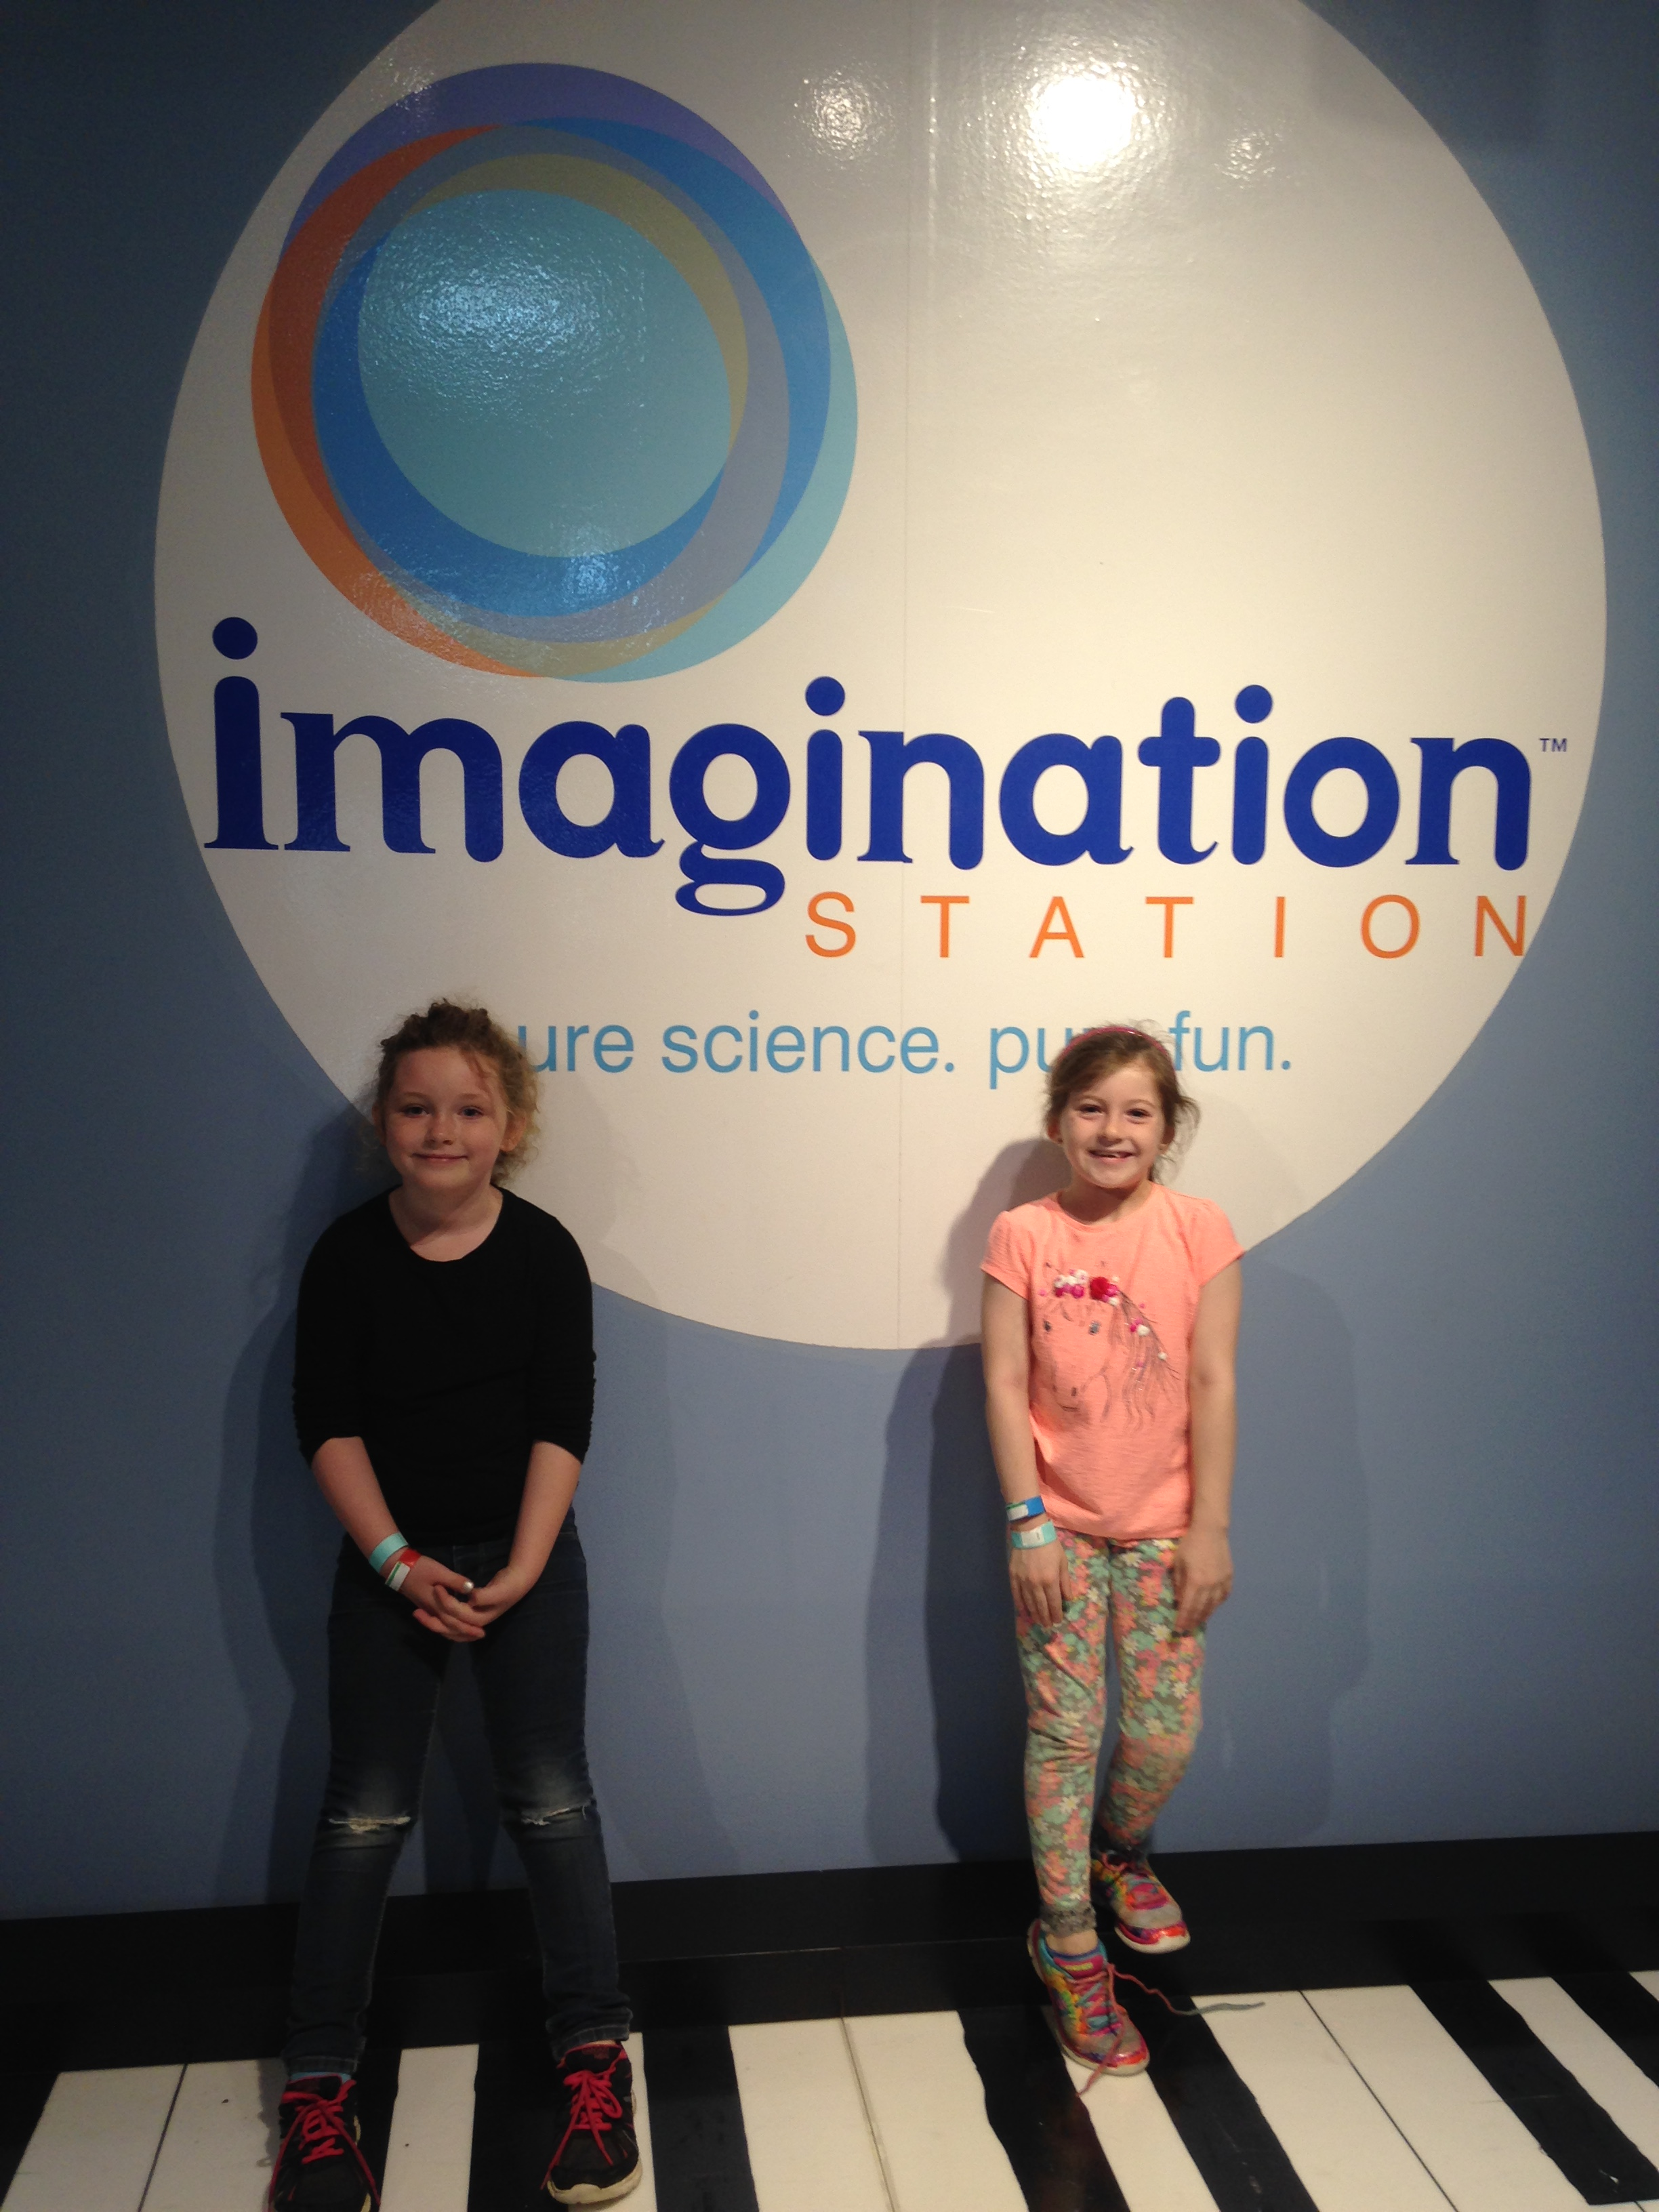 Girls in front of sign for Imagination Station